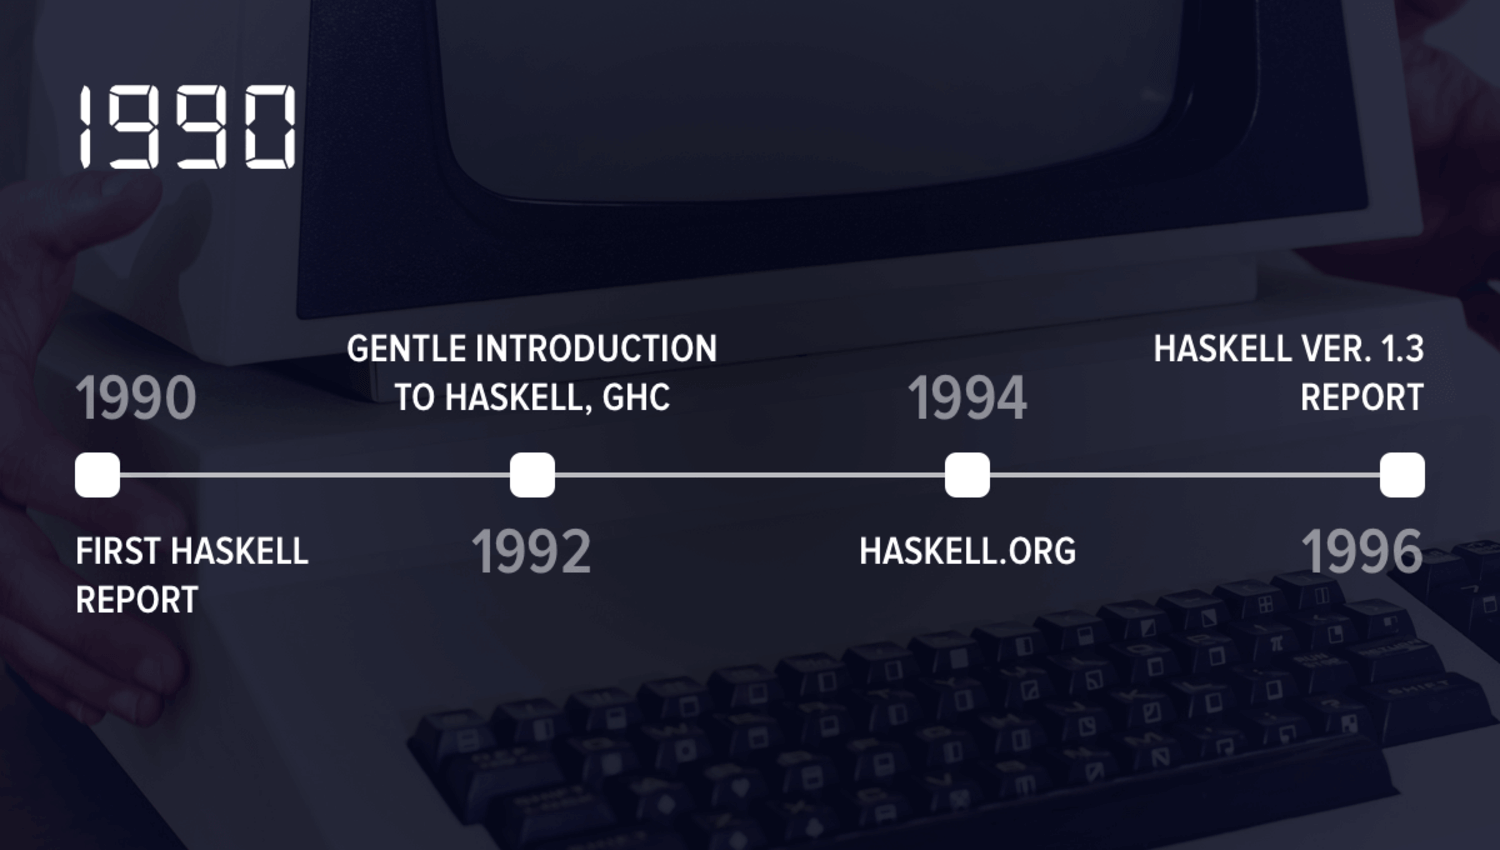 The productive 90's of Haskell evolution